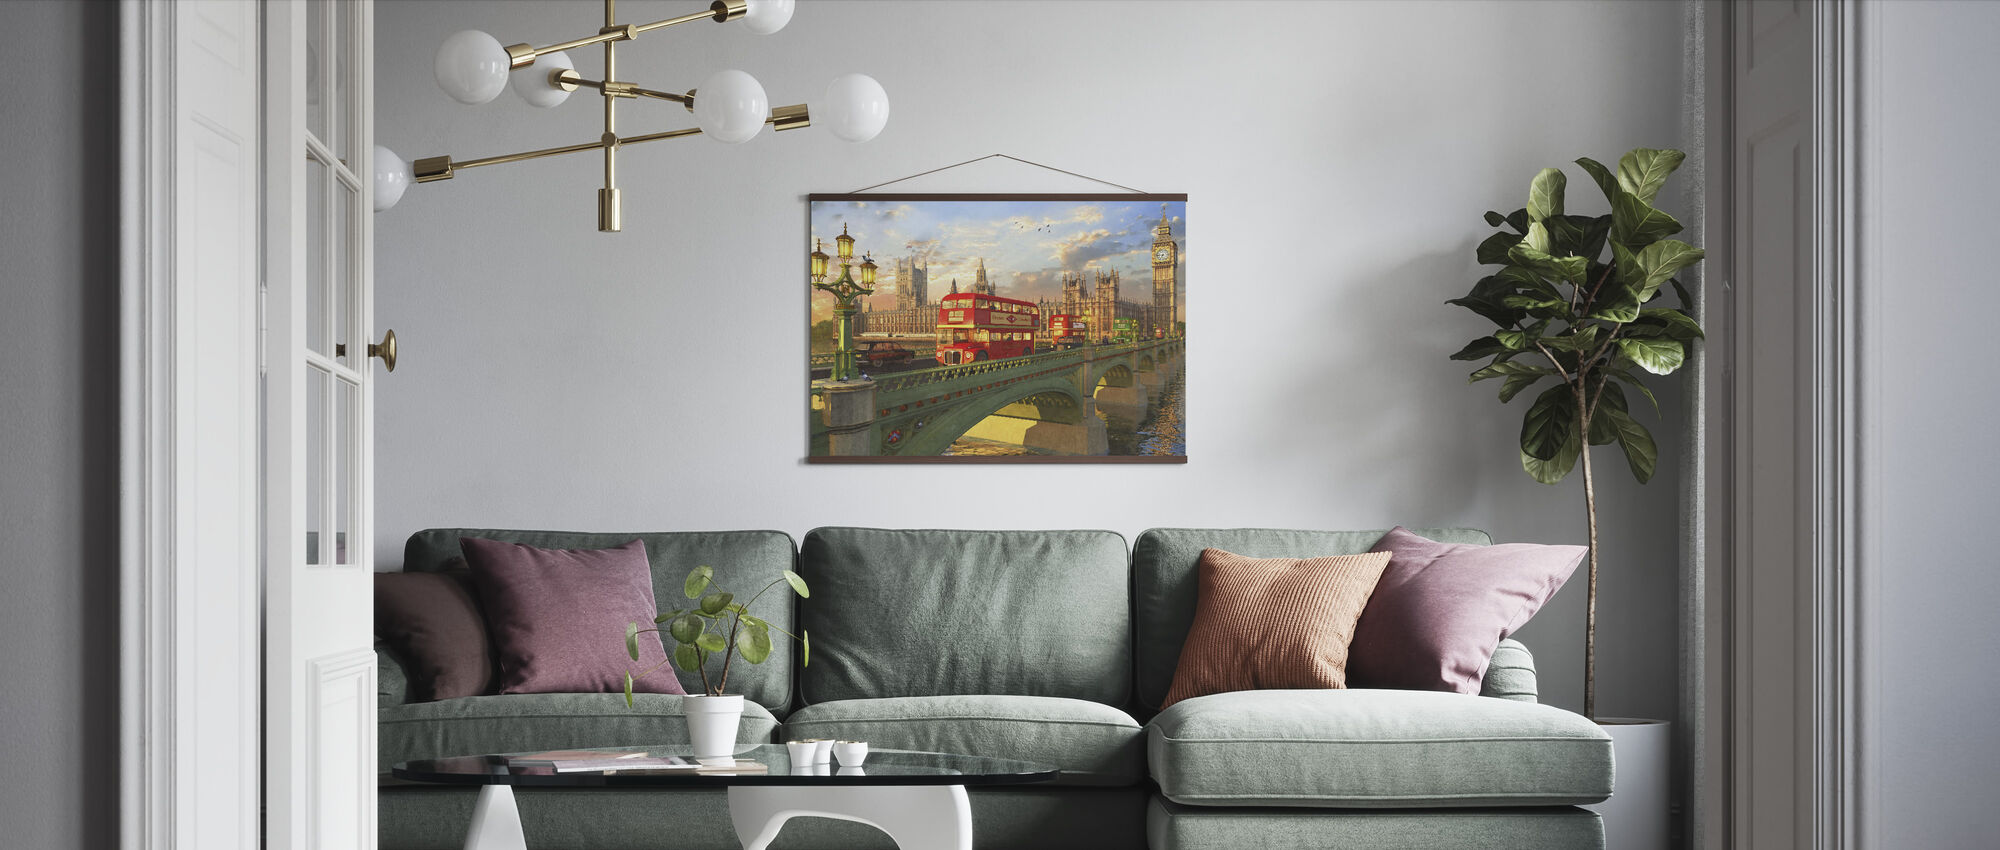 Westminster Bridge Buses - Poster - Living Room